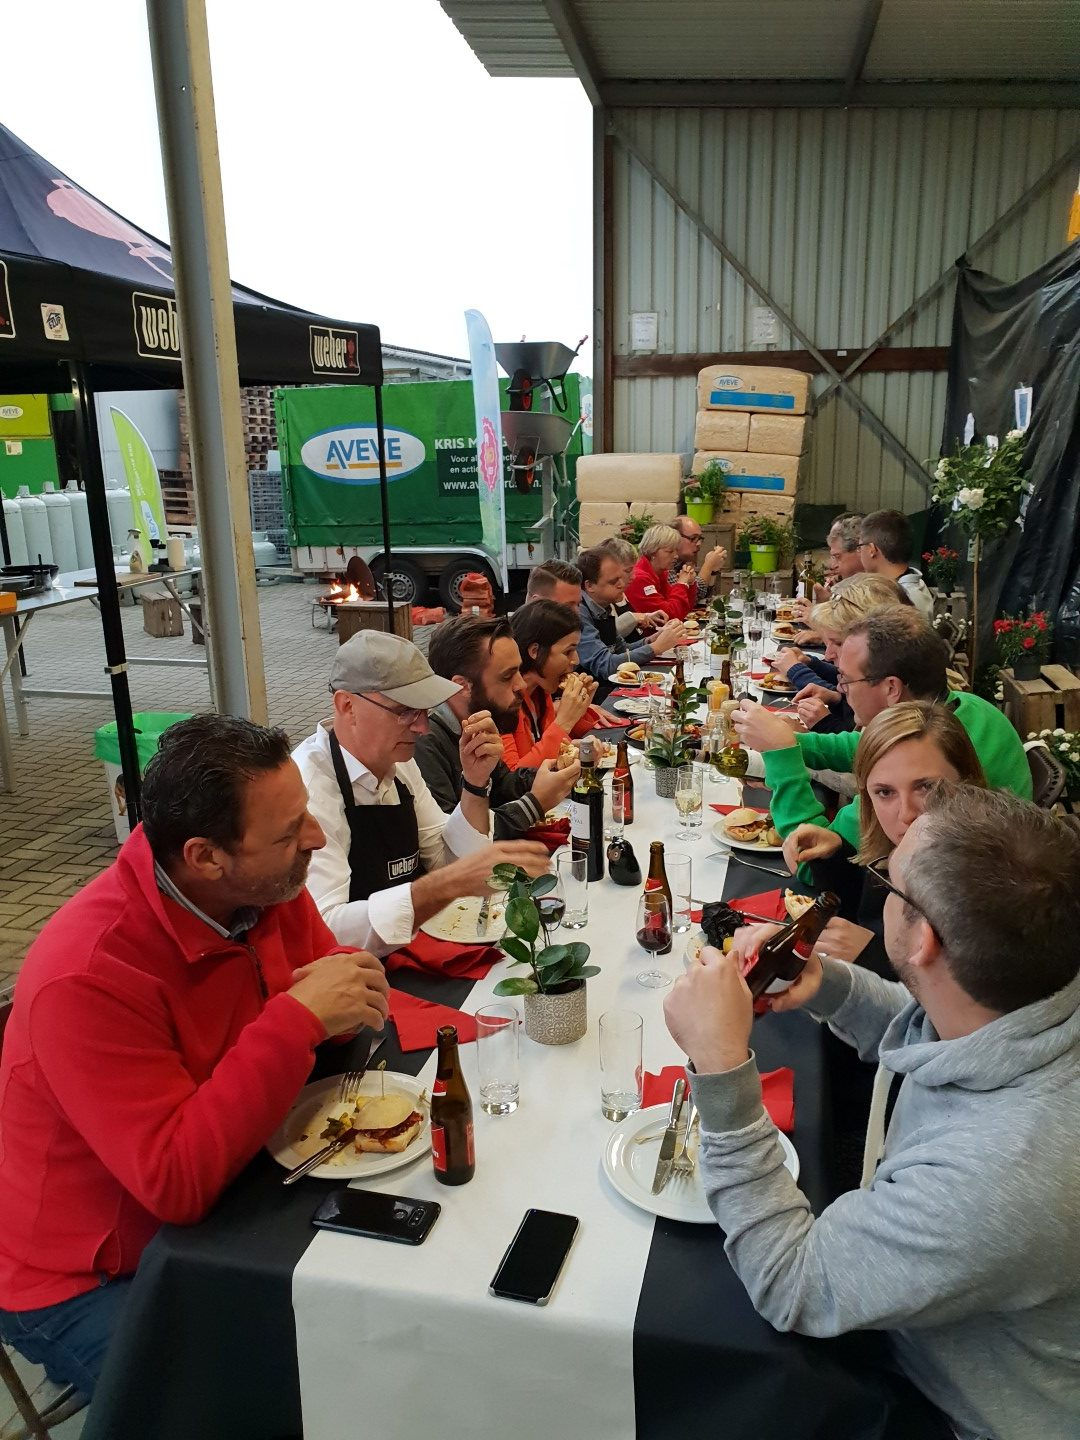 bbq-workshop-12juni-12-e1533205219207